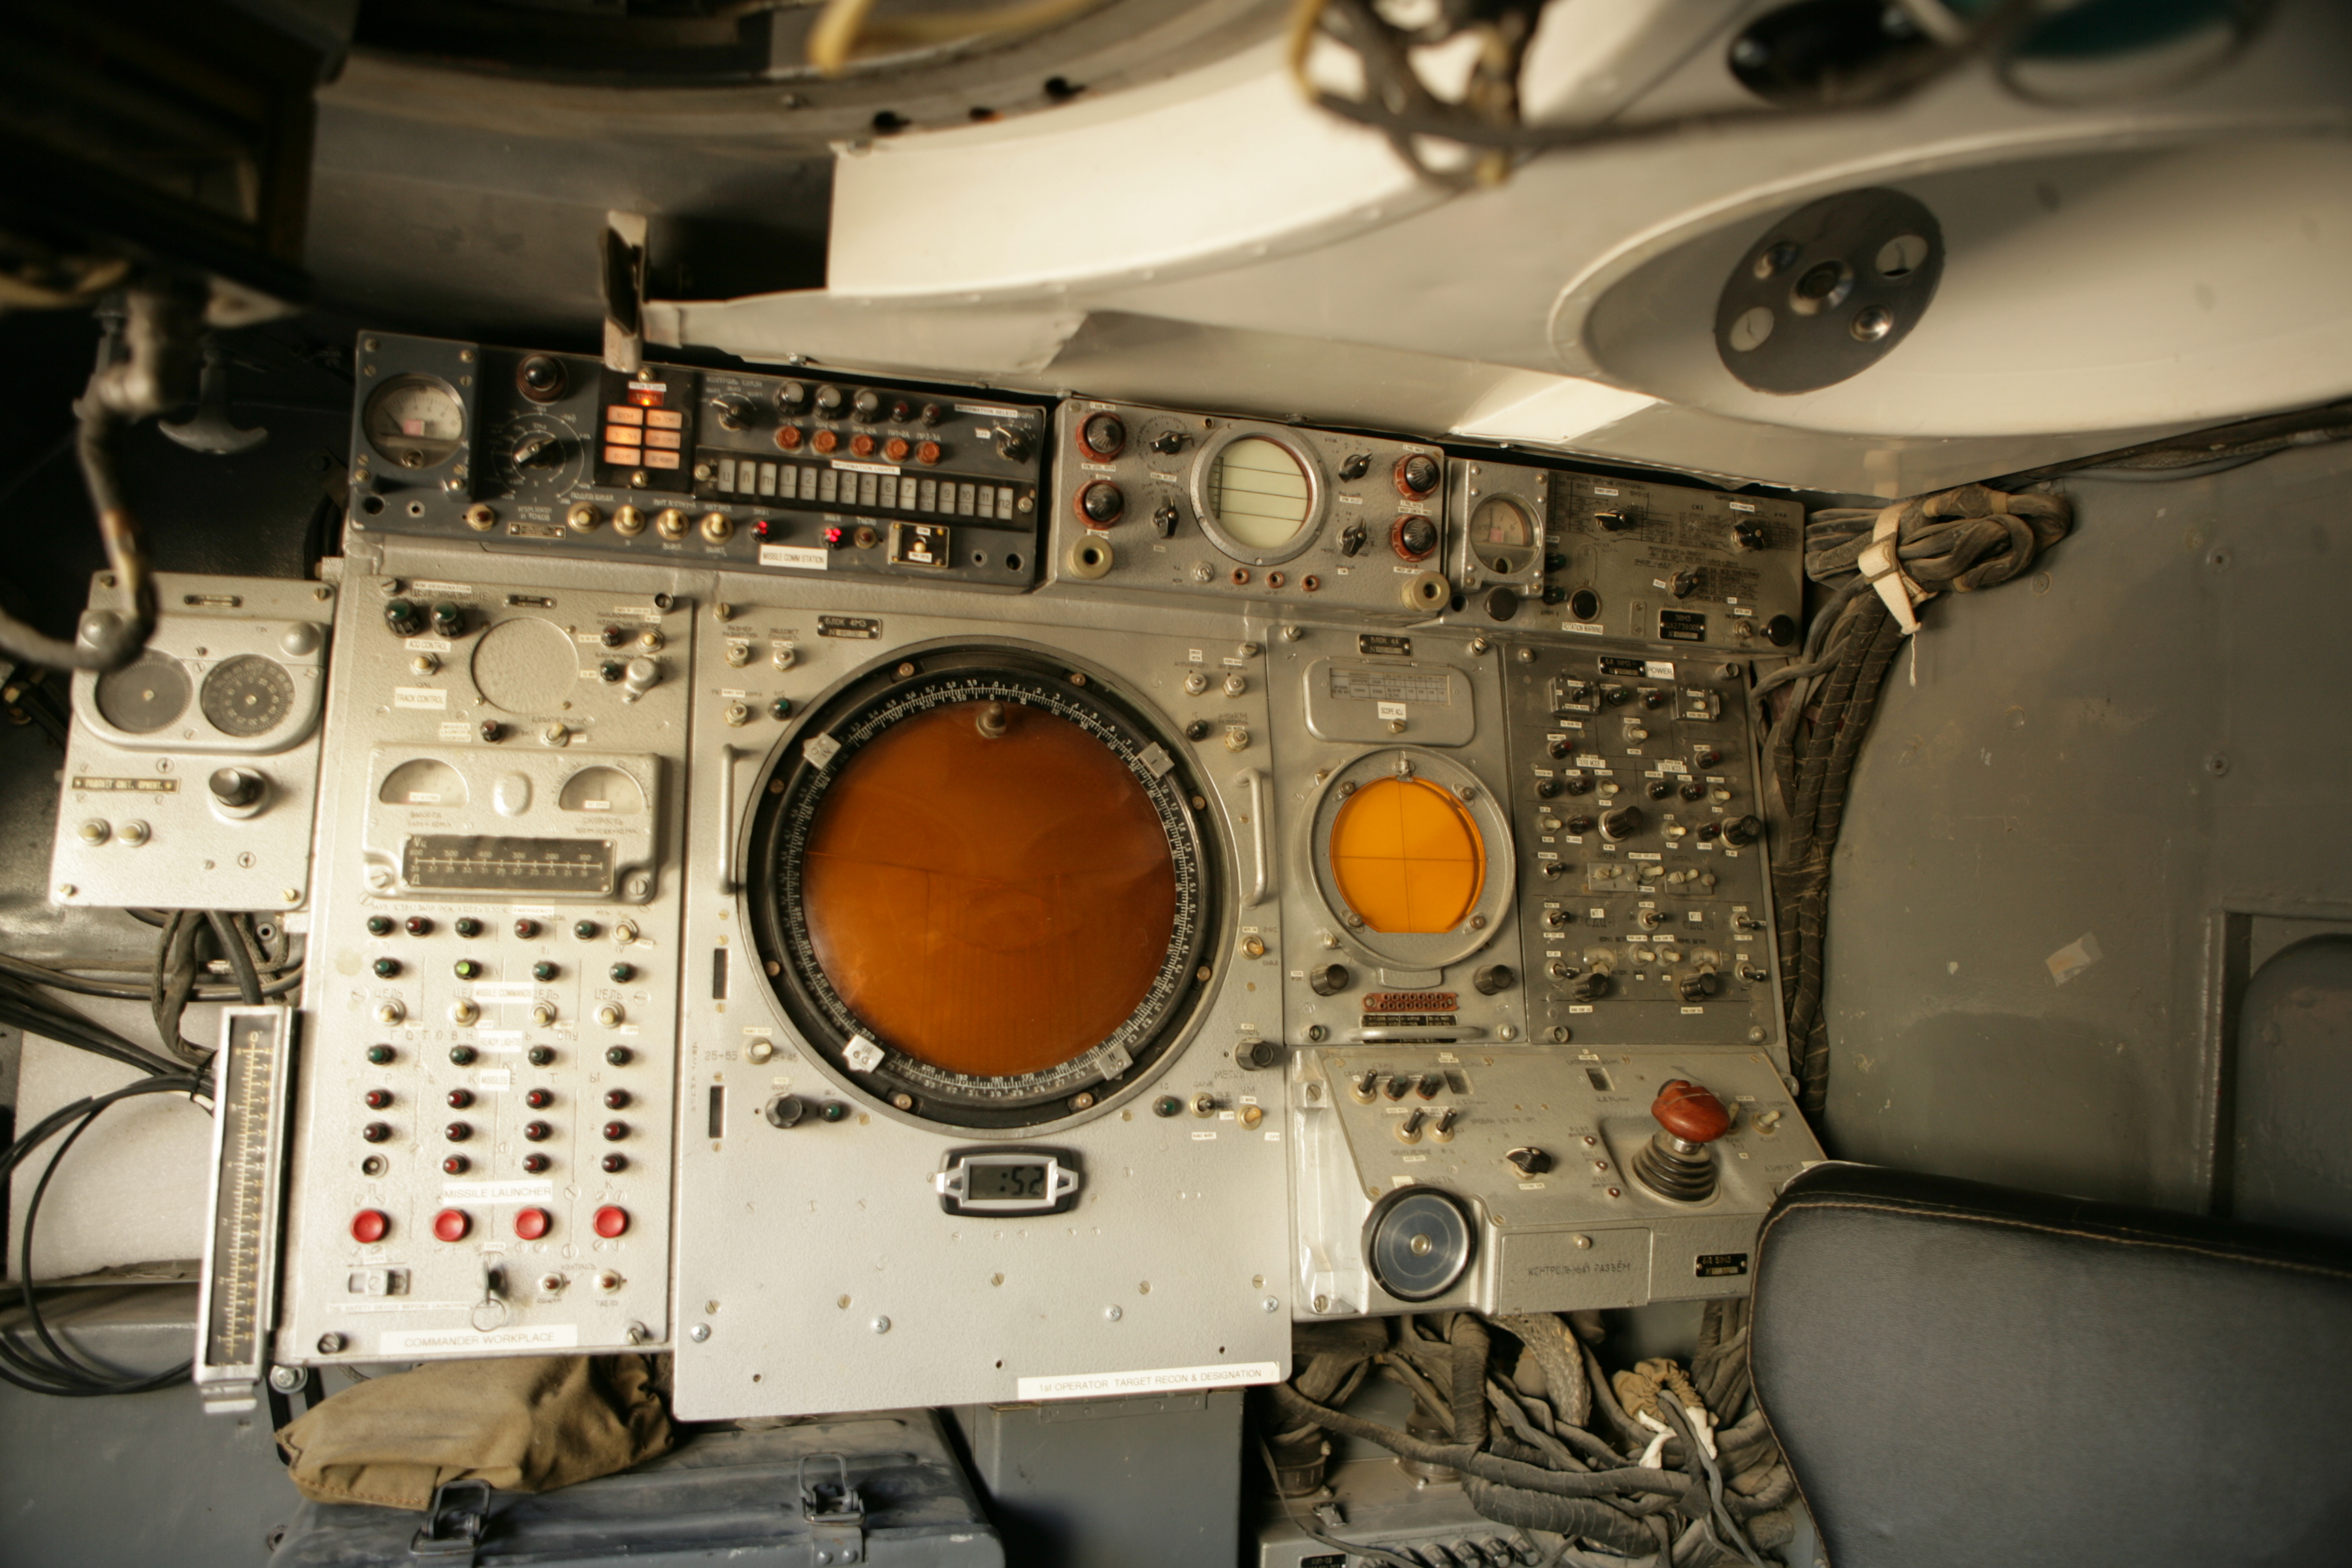 File:1S91 missile guidance system control station.JPG - Wikimedia Commons